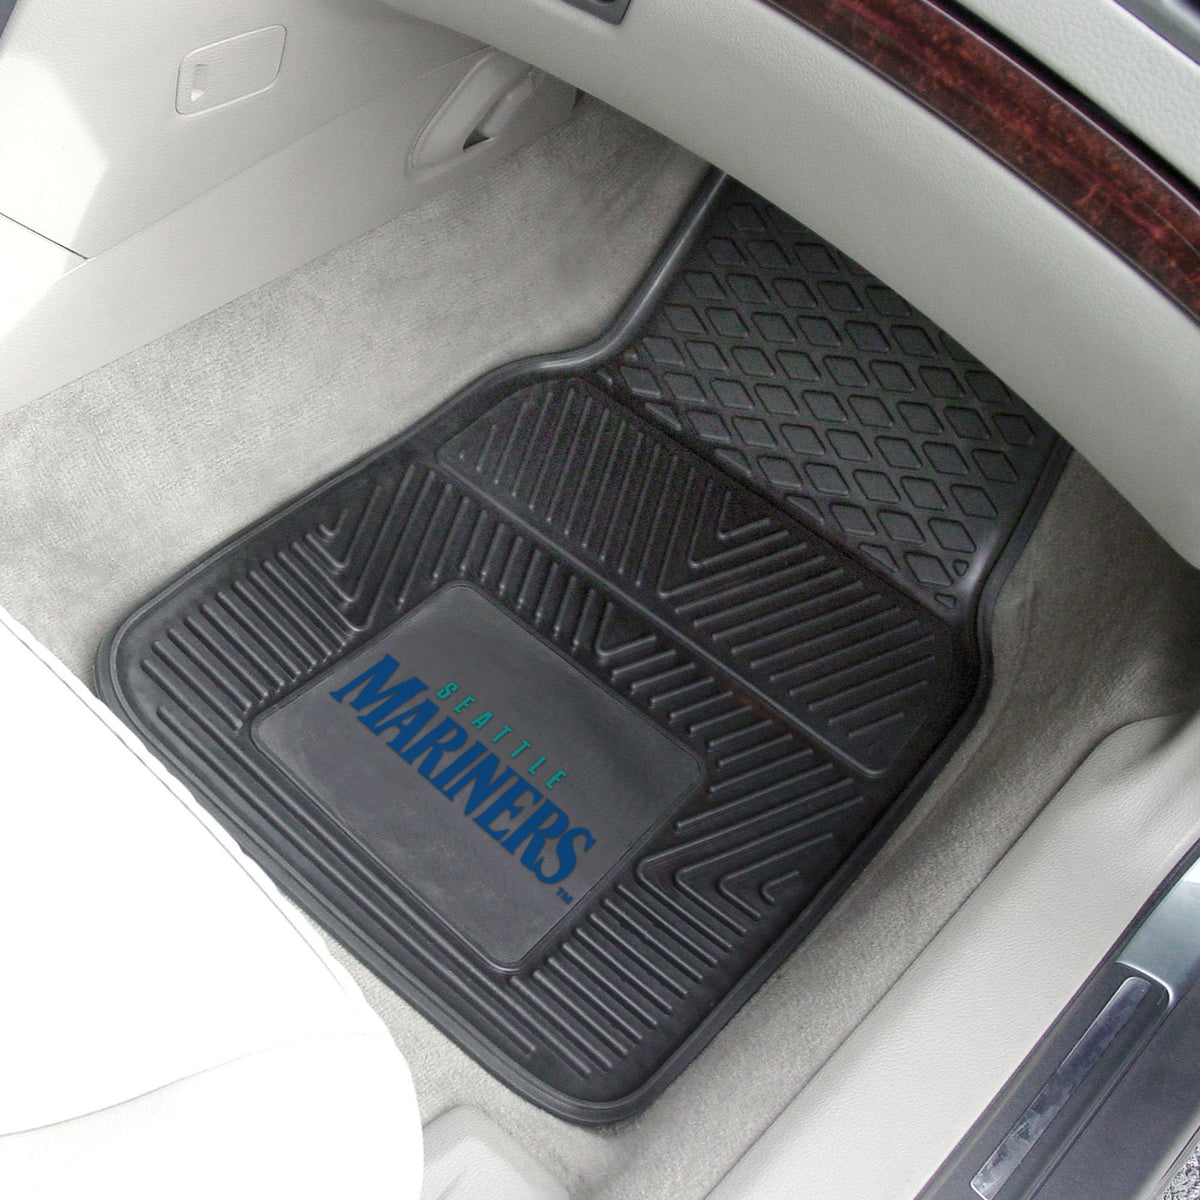 MLB - Vinyl Car Mat, 2-Piece Set MLB Mats, Front Car Mats, 2-pc Vinyl Car Mat Set, MLB, Auto Fan Mats Seattle Mariners